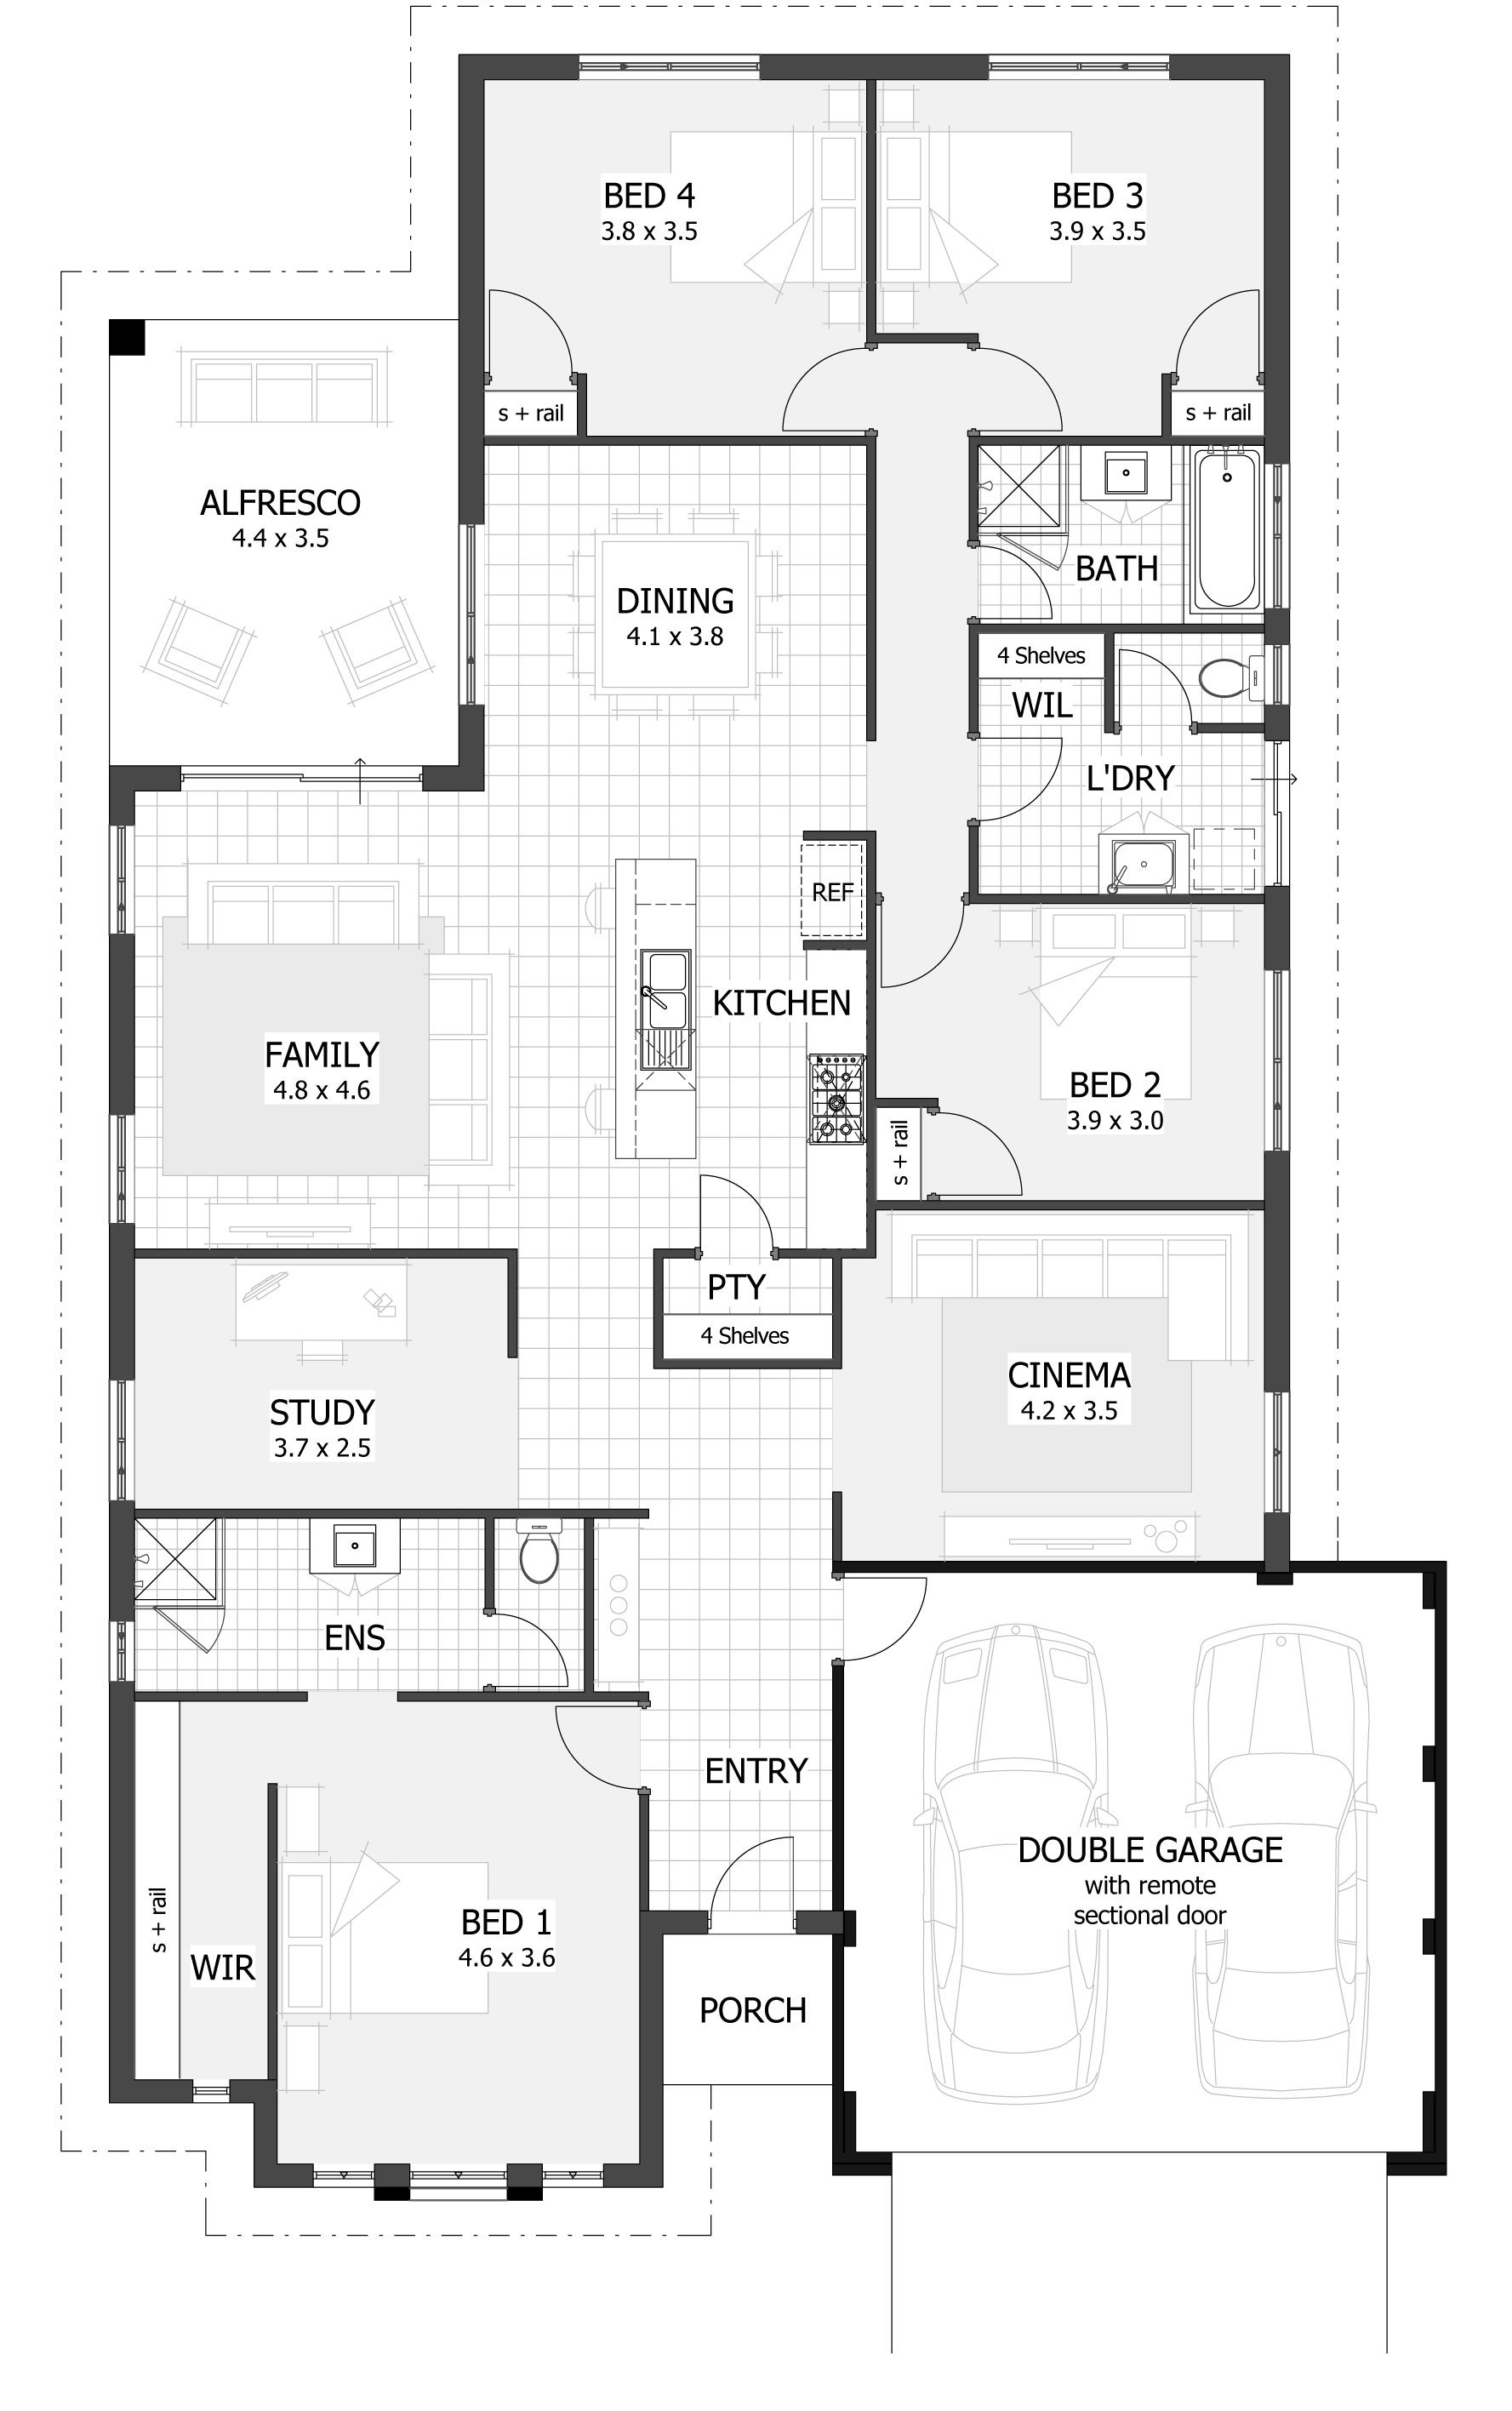 Over 35 Large Premium House Designs And House Family House Plans House Plans Small House Plans